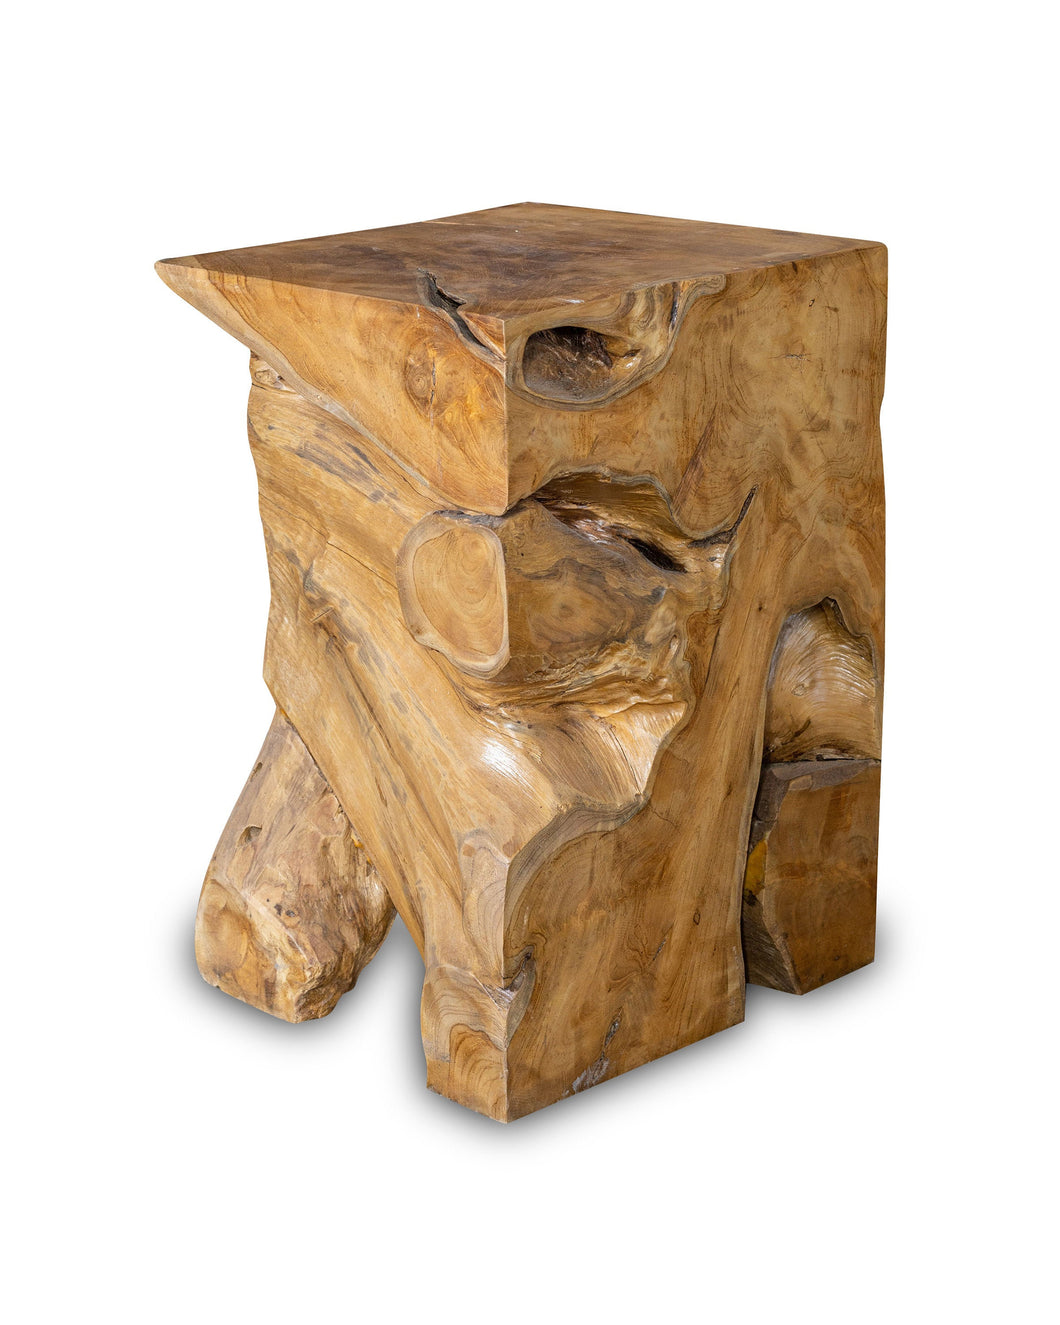 Square Solid Teak Wood Side Table, Natural Tree Stump Stool or End Table #19    17.75